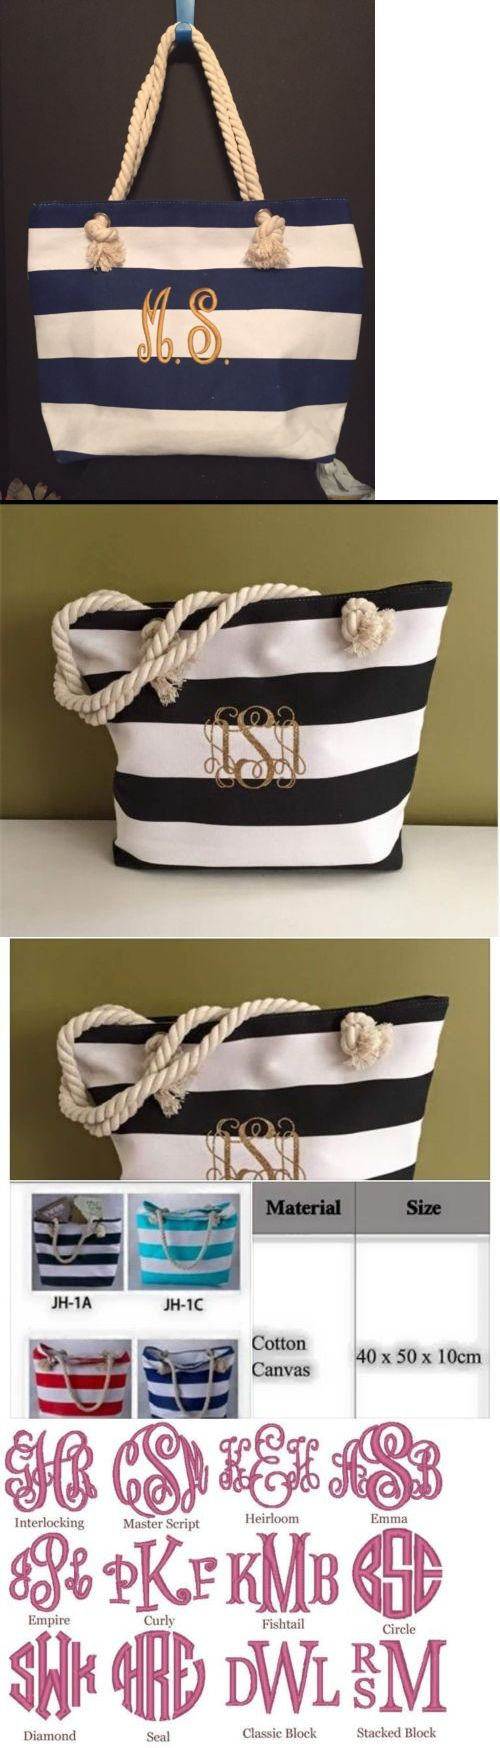 Bridal Handbags And Bags: Navy And White Beach Tote Bag Wedding Summer Overnight Shopping -> BUY IT NOW ONLY: $19.99 on eBay!